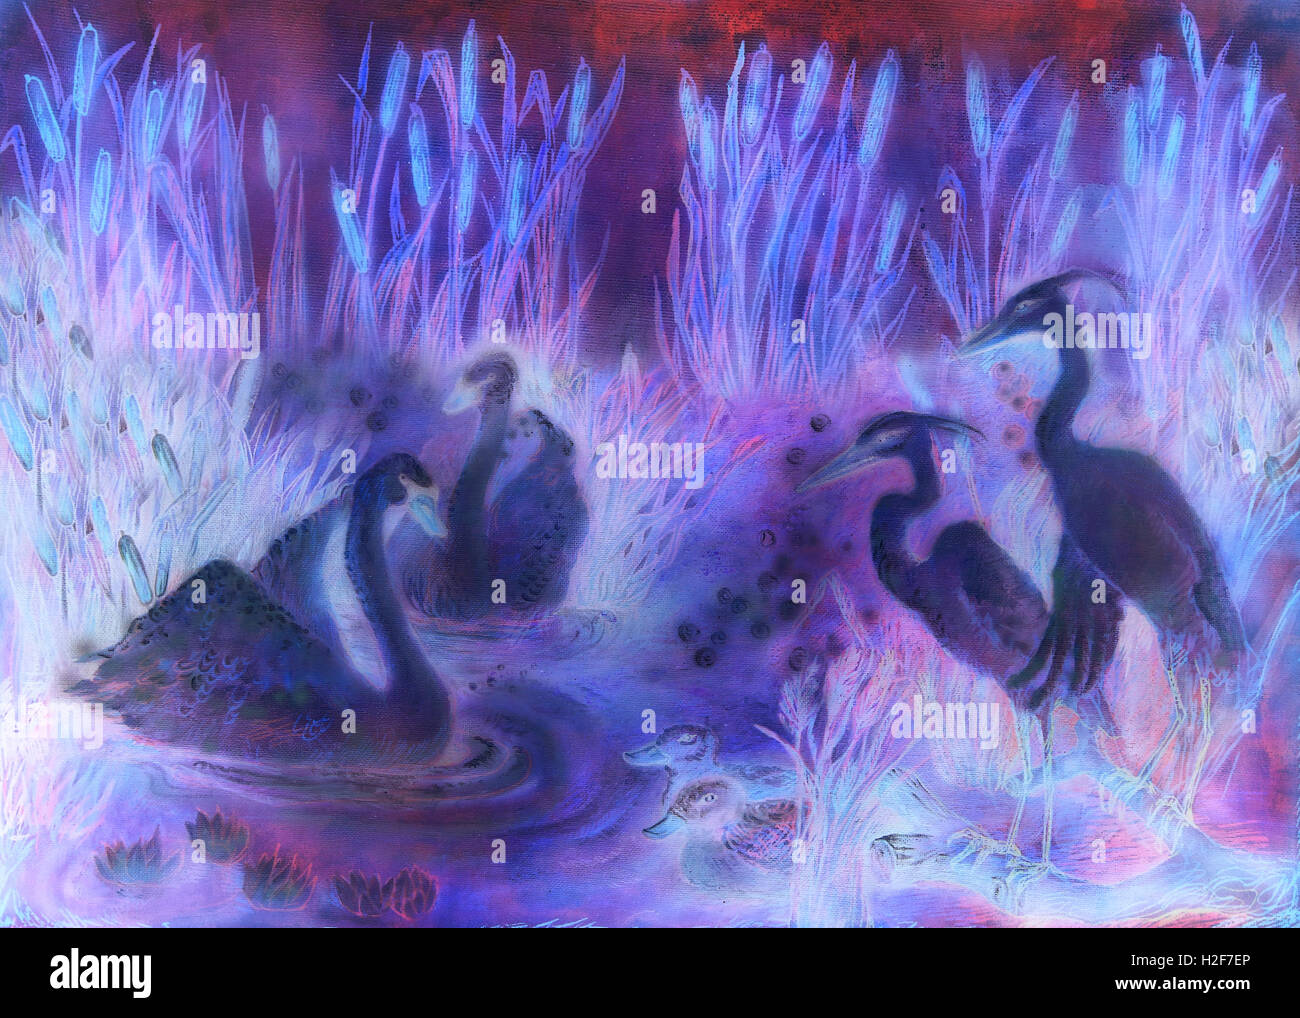 decorative illustration in violet and lila tones of birds swimming on pond with reeds - Stock Image